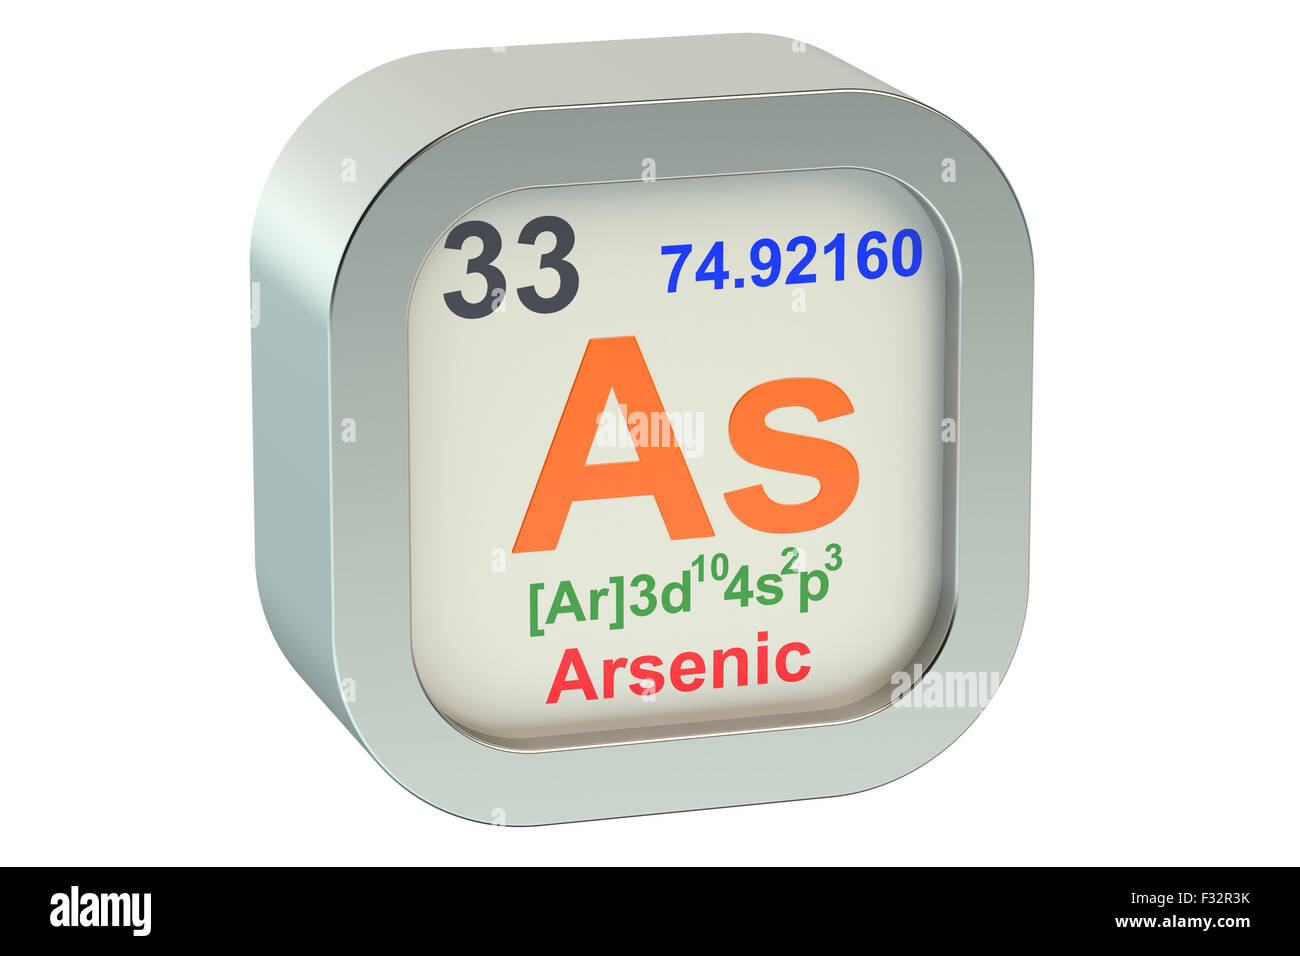 Arsenic element symbol isolated on white background stock photo arsenic element symbol isolated on white background biocorpaavc Image collections